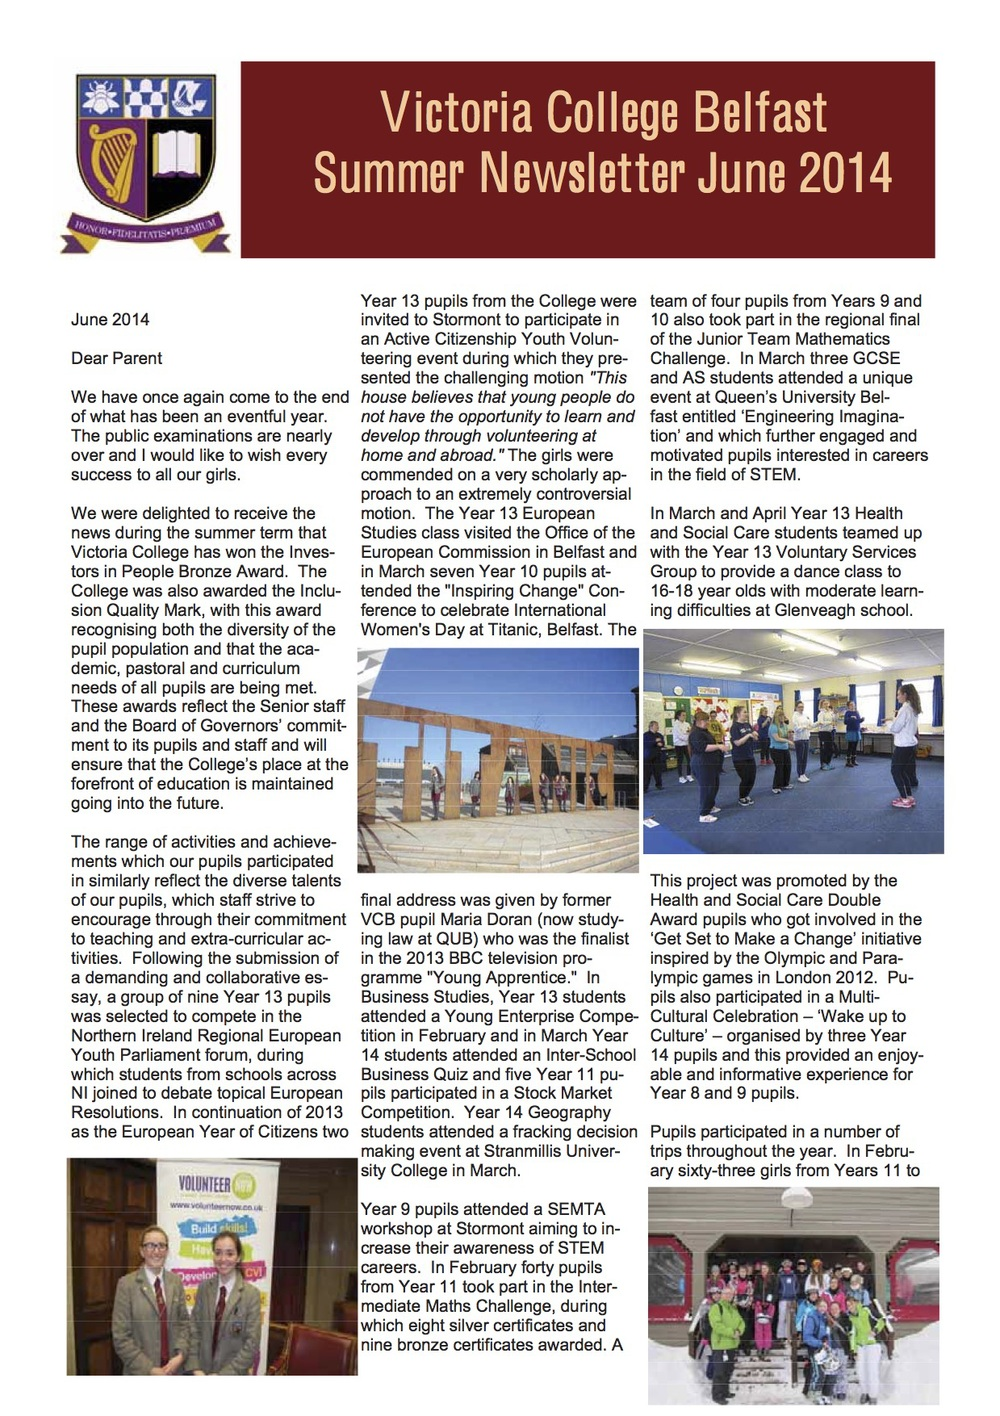 Summer Newsletter June 2014